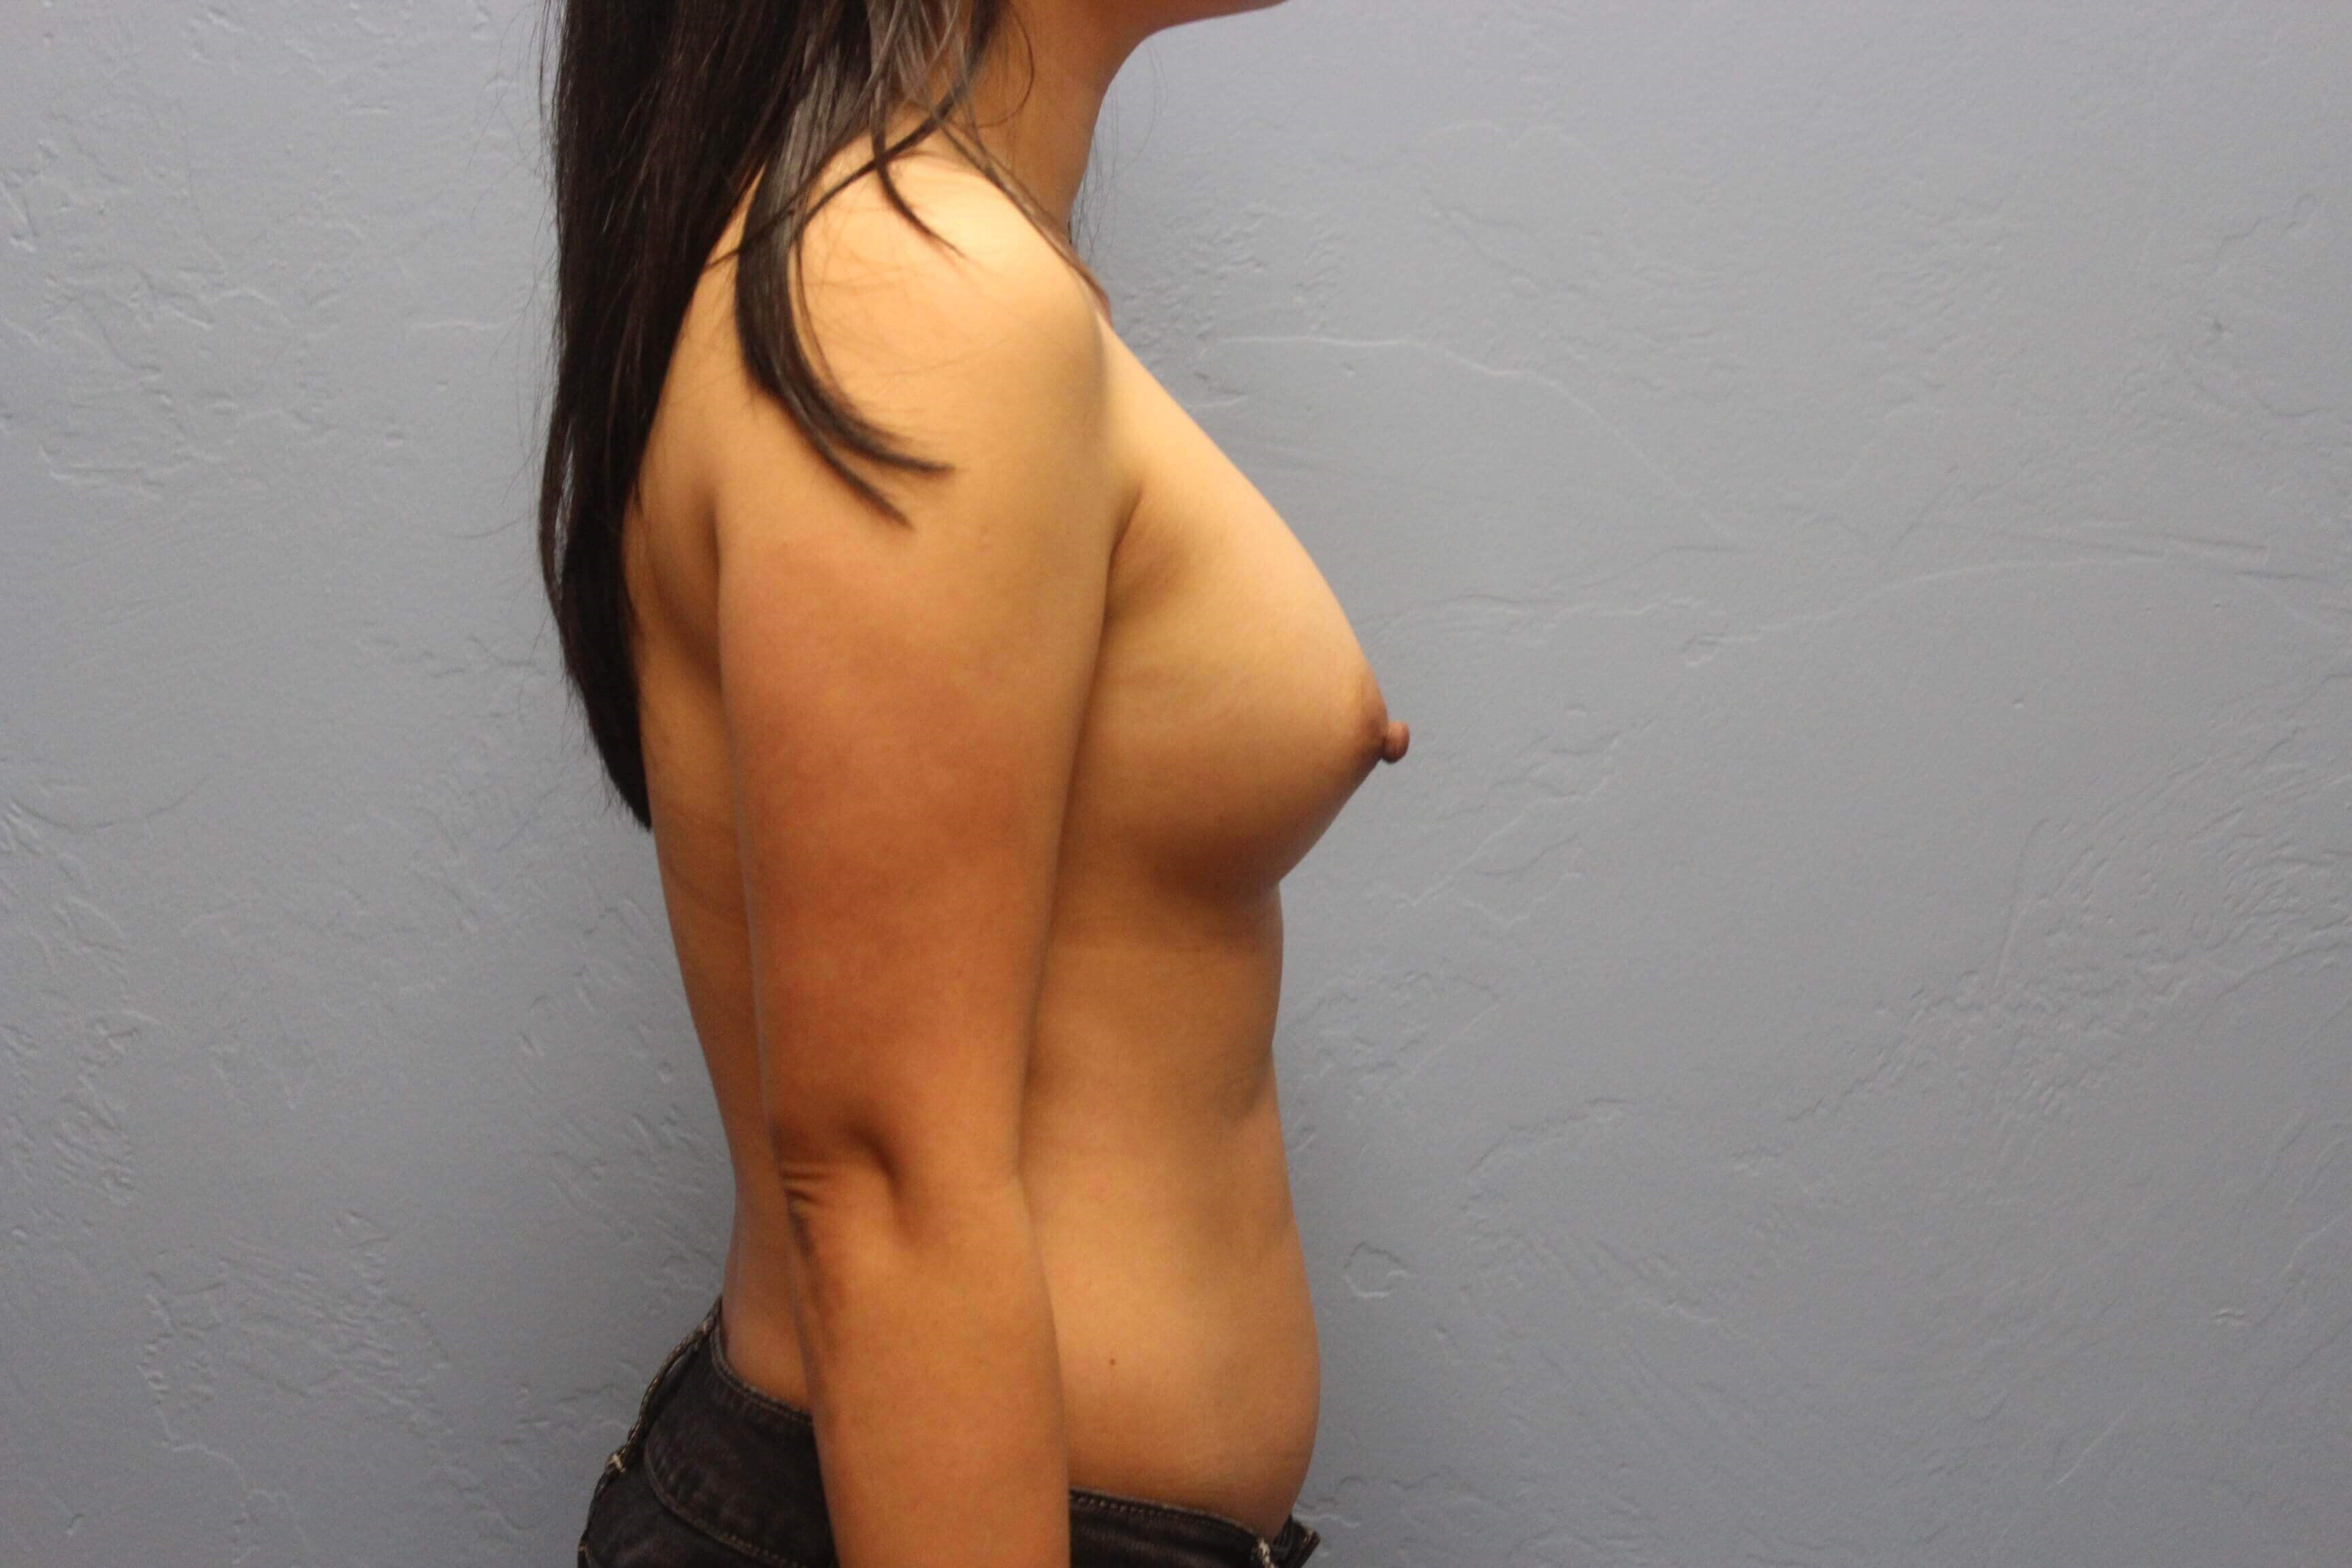 Remove/Replace Breast Implants Before